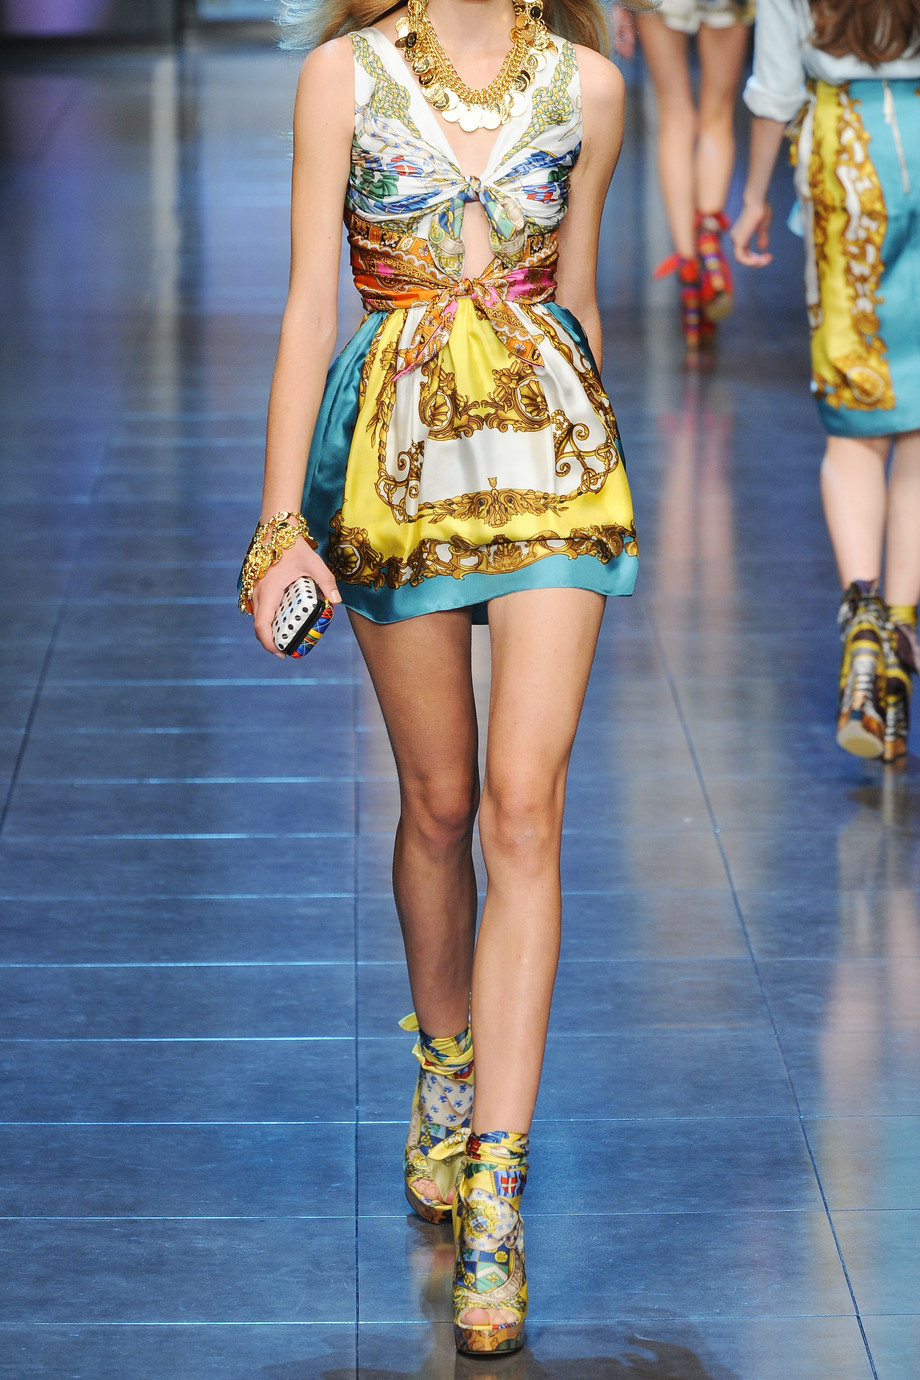 96daaa00 dolce gabbana printed summer dress wedding guest dressing what NOT to wear  bare to clothed ratio